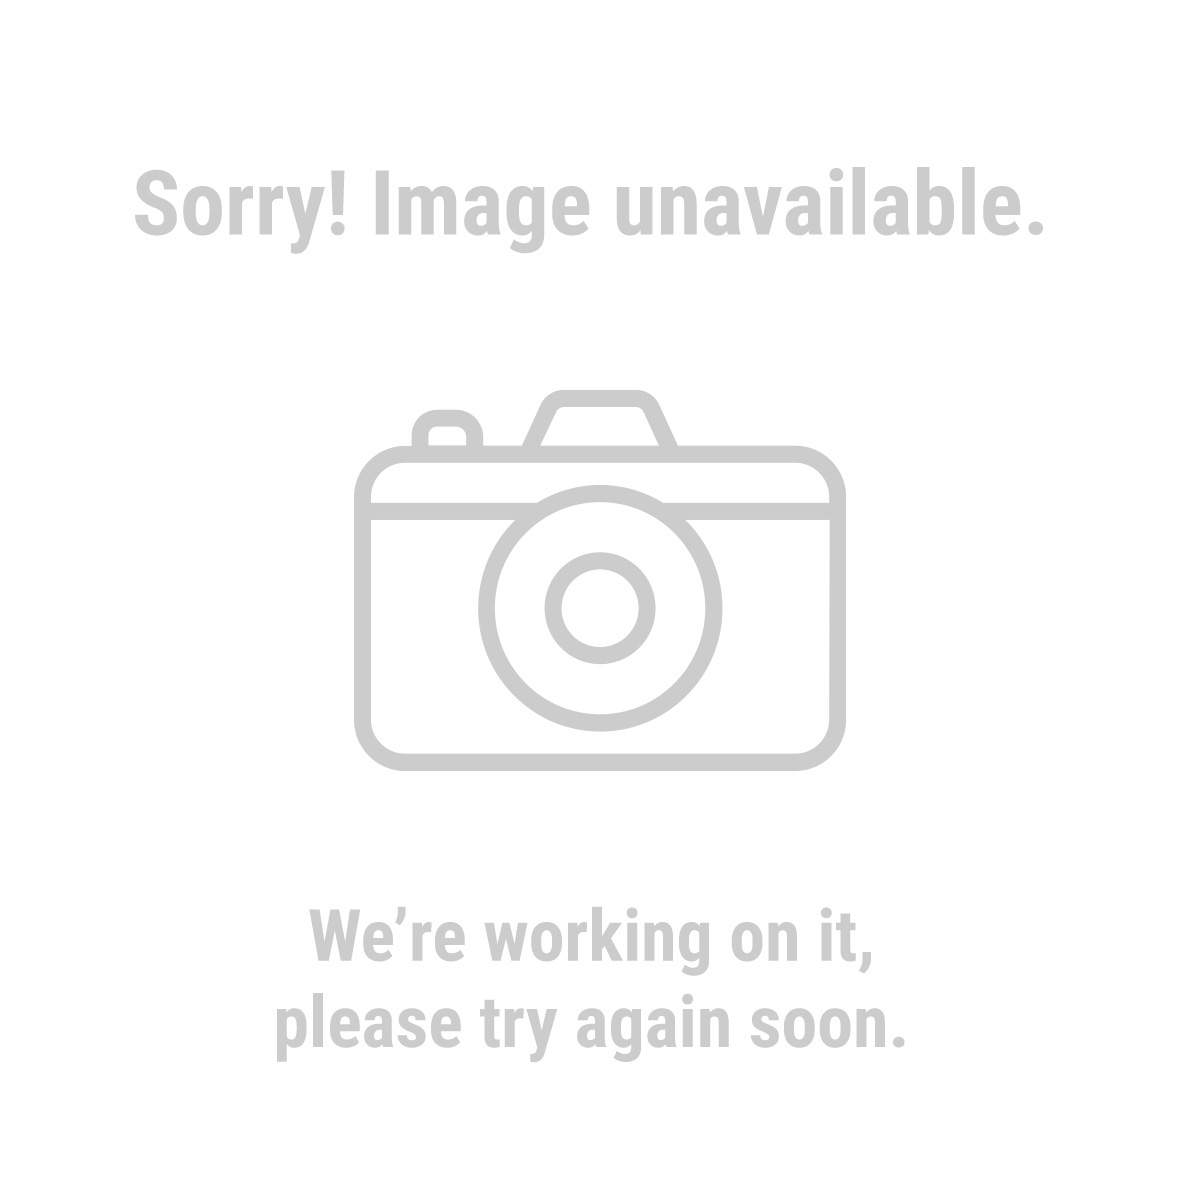 One Stop Gardens 95692 1-1/4 Gallon Sprayer